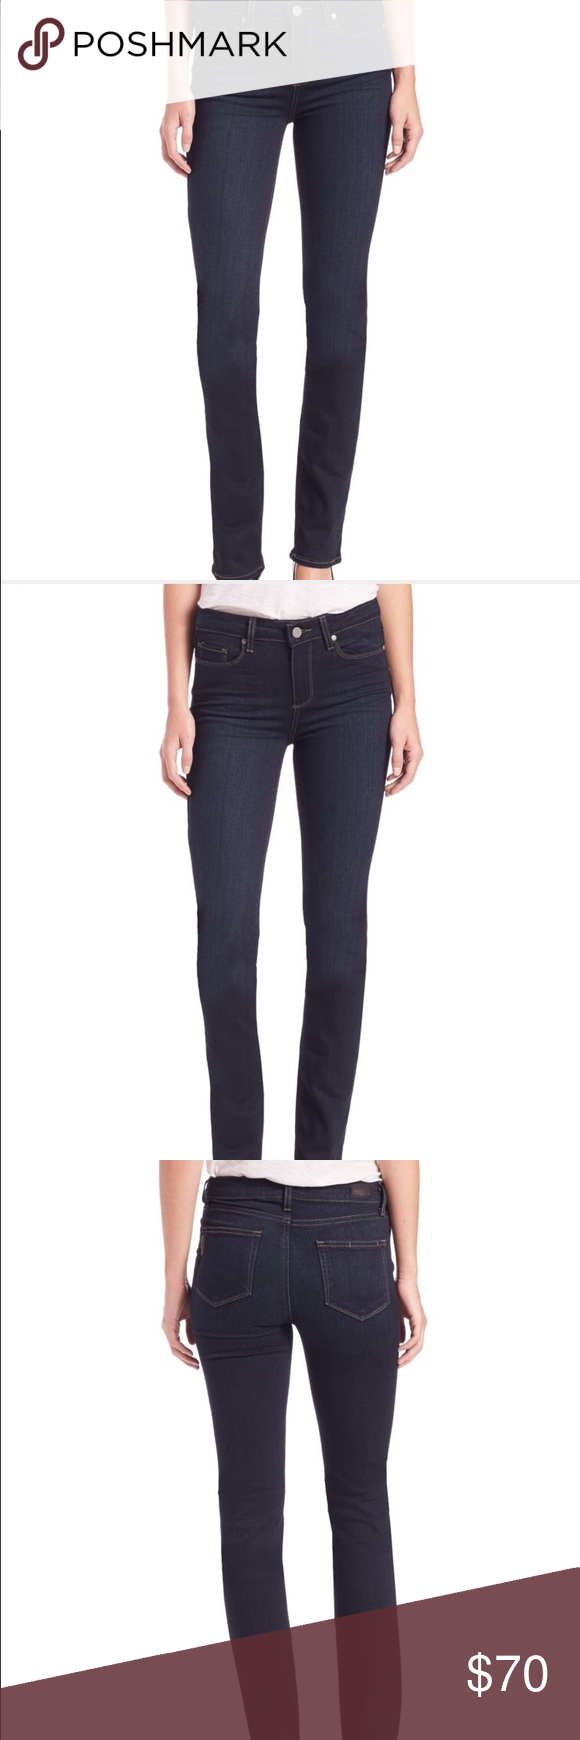 Paige Hoxton High-Rise Straight Leg Jean Paige Hoxton High-Rise Straight Leg Jean, color Mona (dark navy), rise ~10 inches, inseam ~34 inches Paige Jeans Jeans Straight Leg